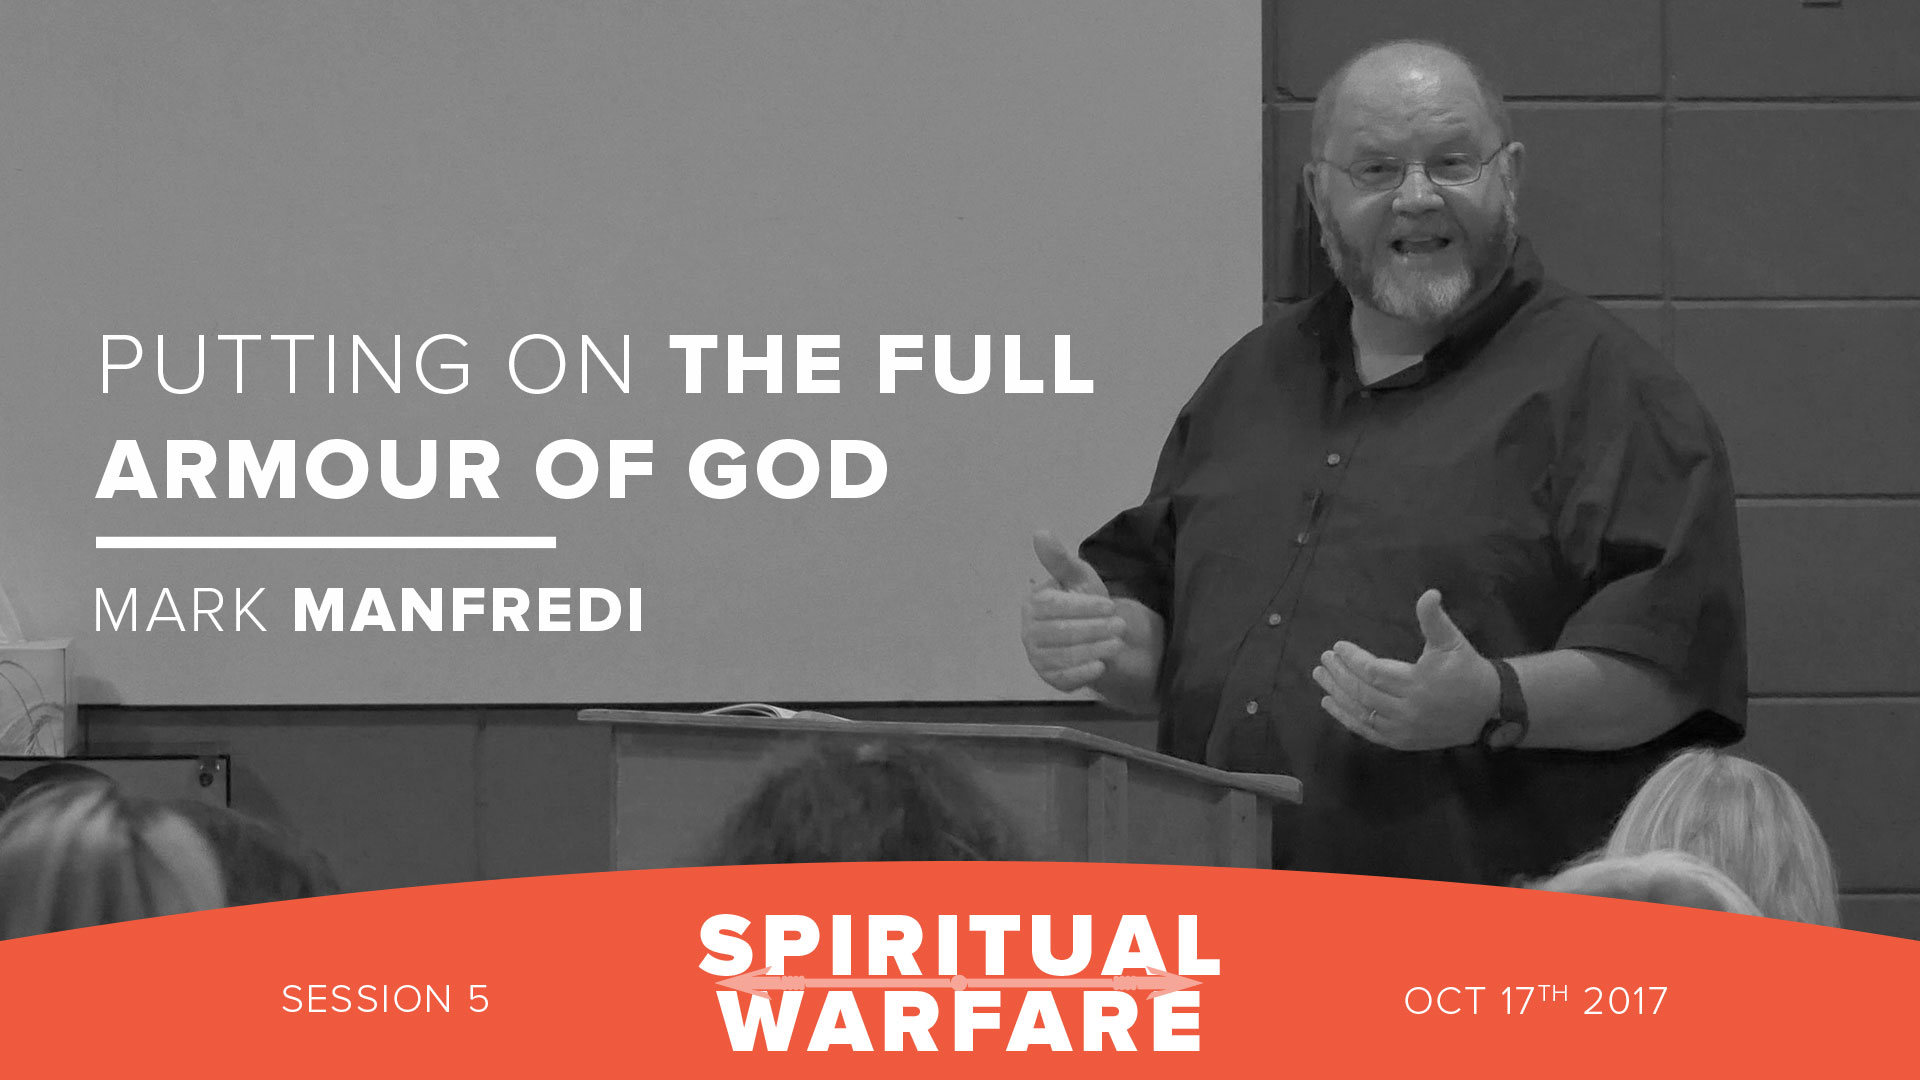 Putting on the full armour of God